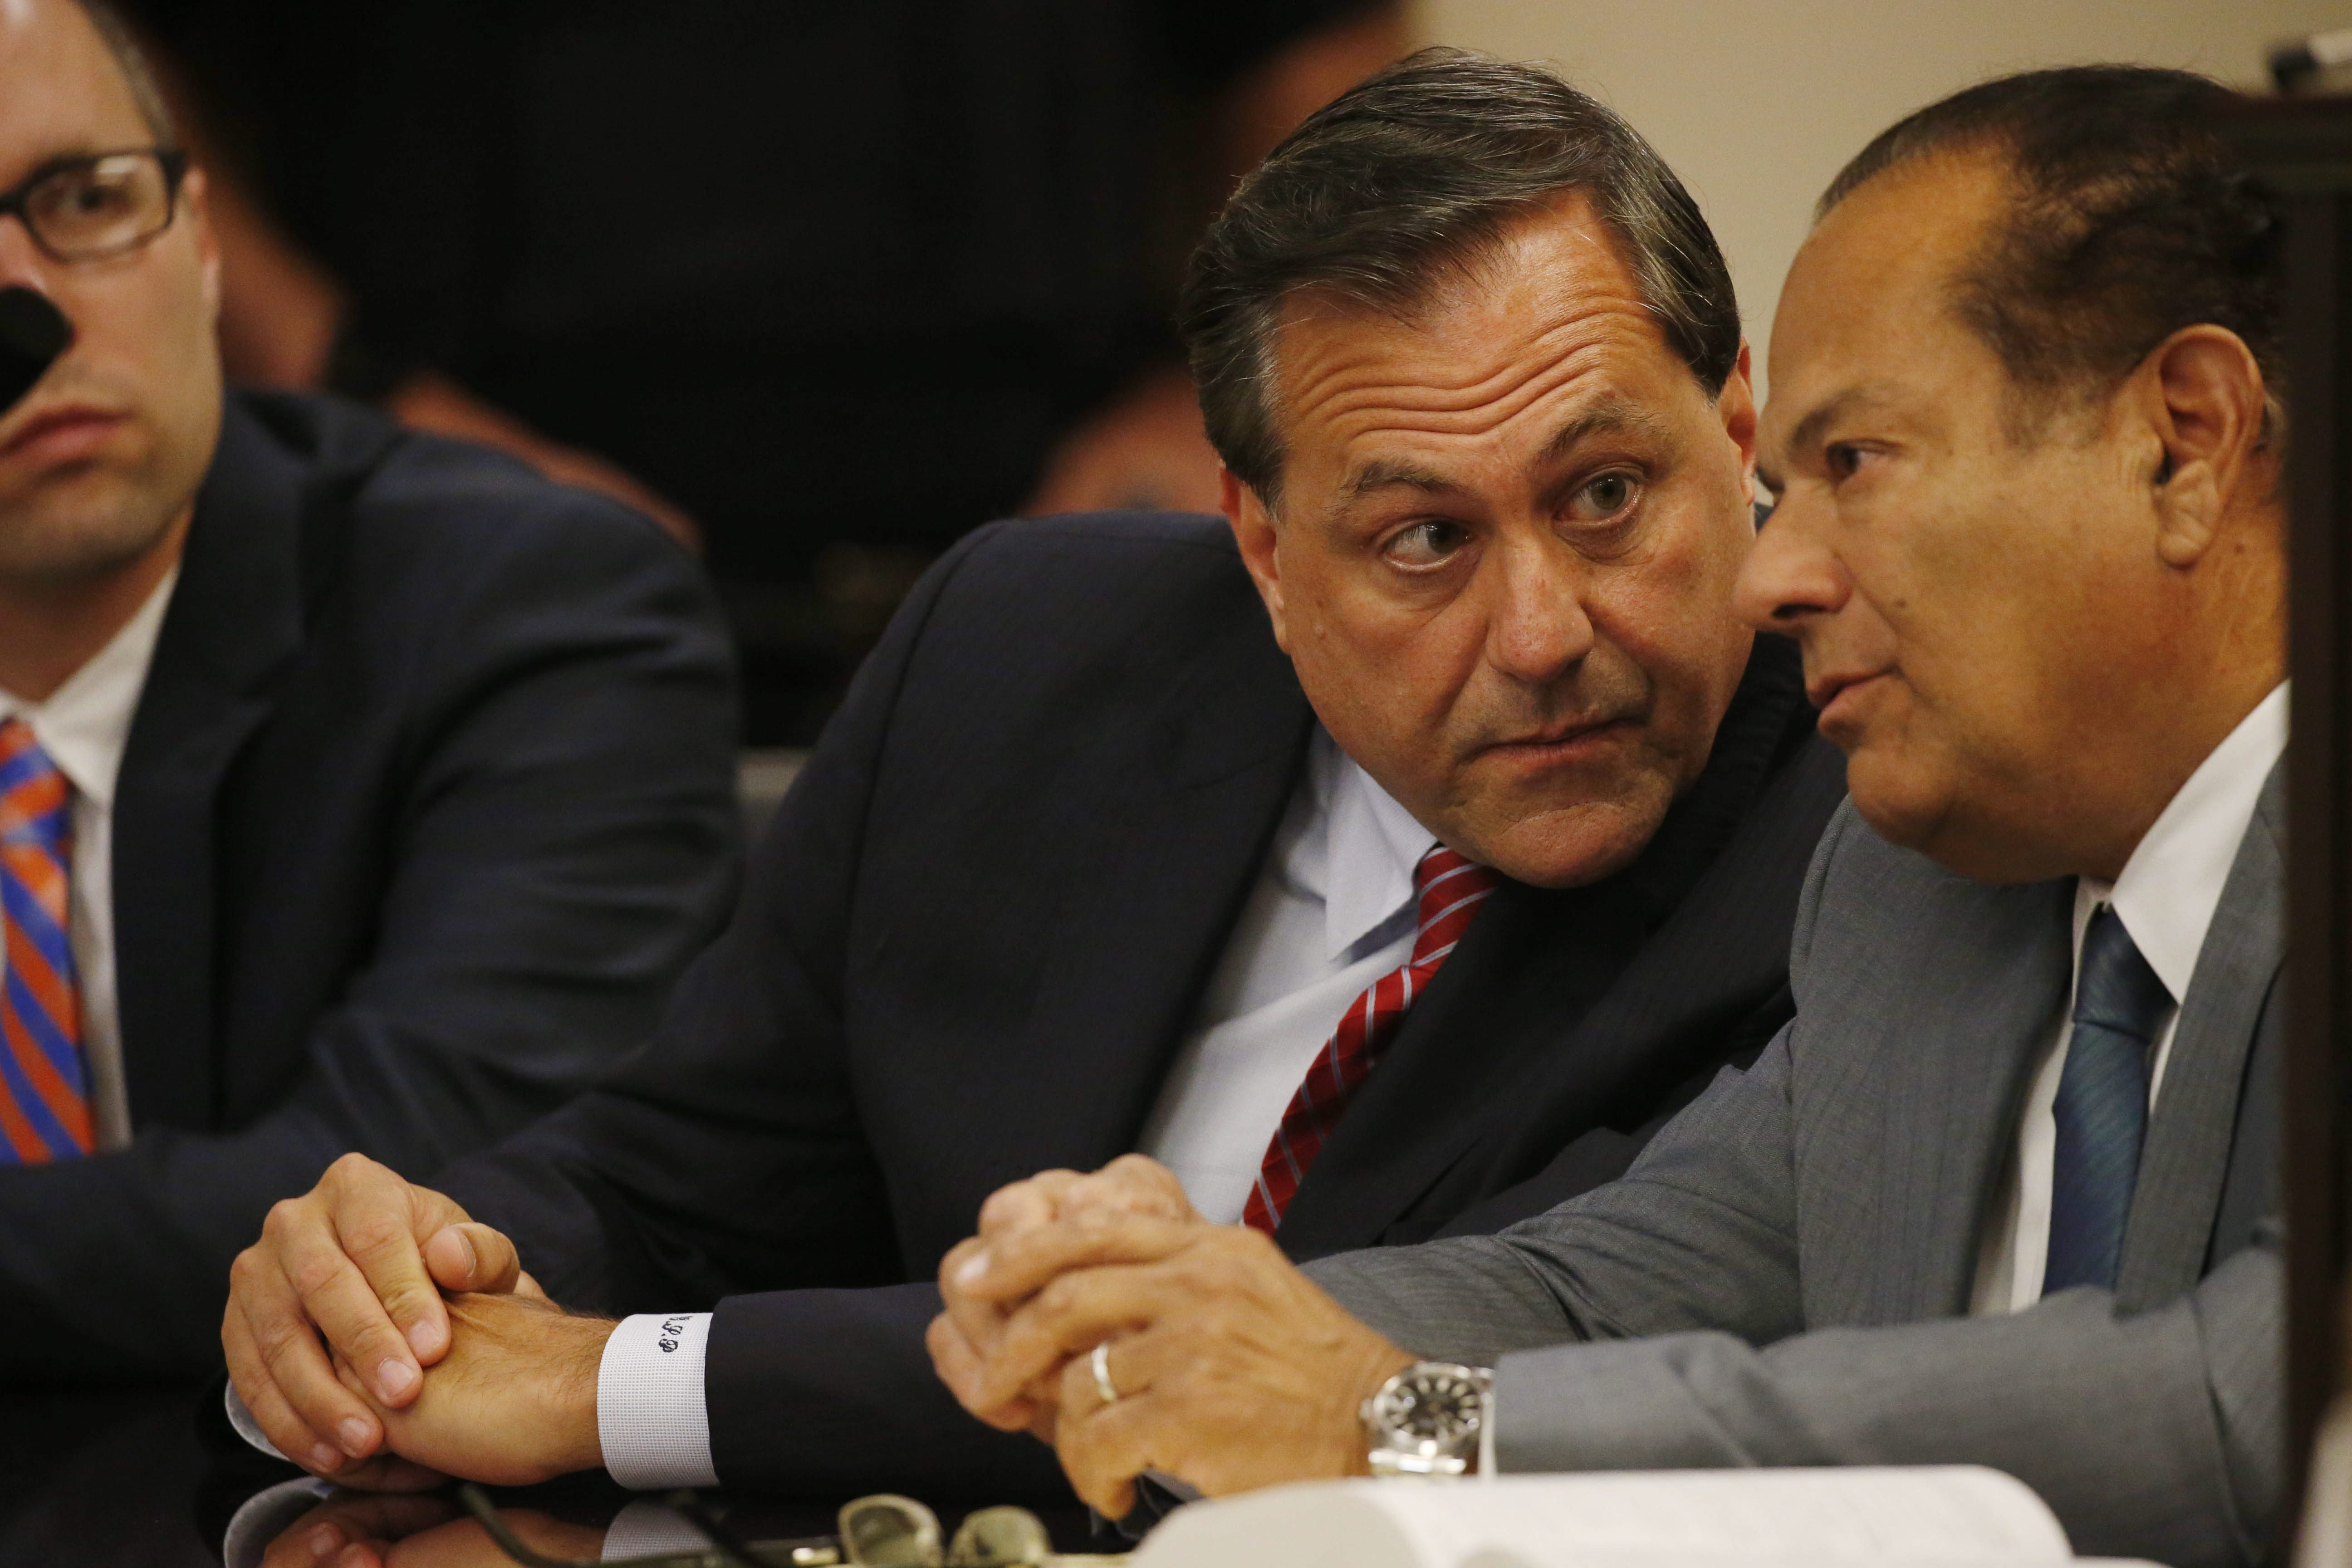 G. Steven Pigeon, left, next to his attorney, Paul Cambria, as he is indicted Thursday. (Derek Gee/Buffalo News)